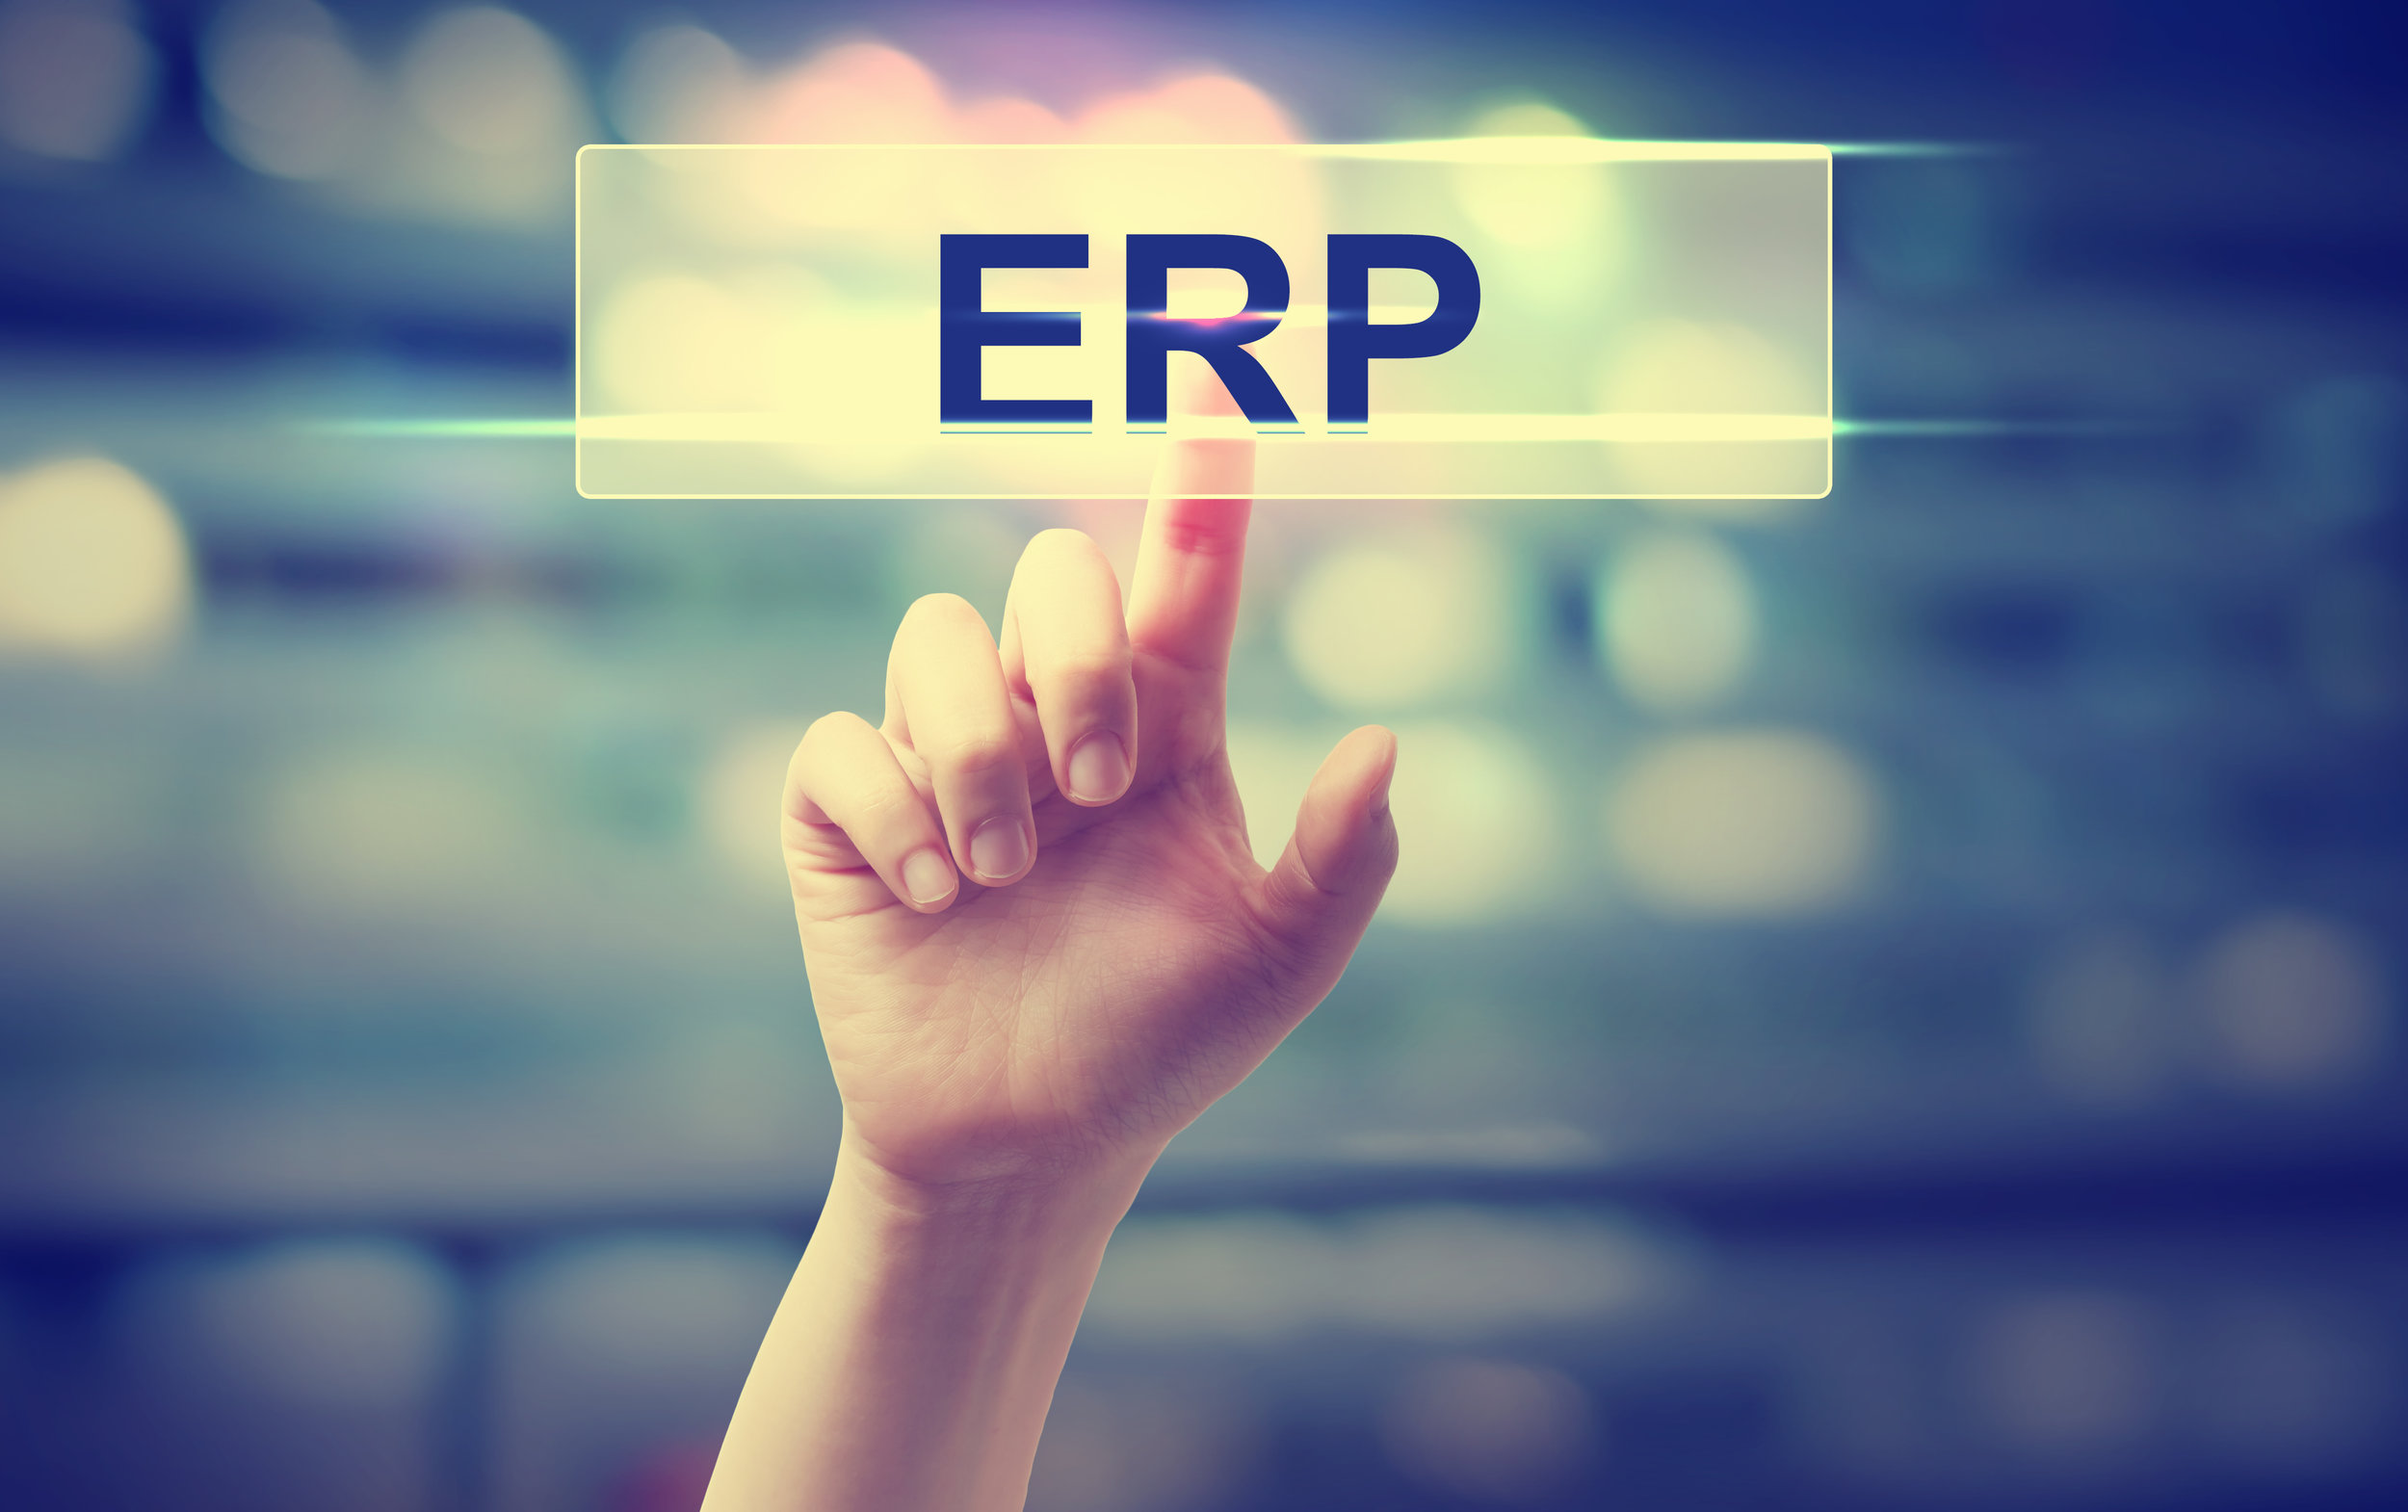 6 Ways ERP Software Can Strengthen Your Business